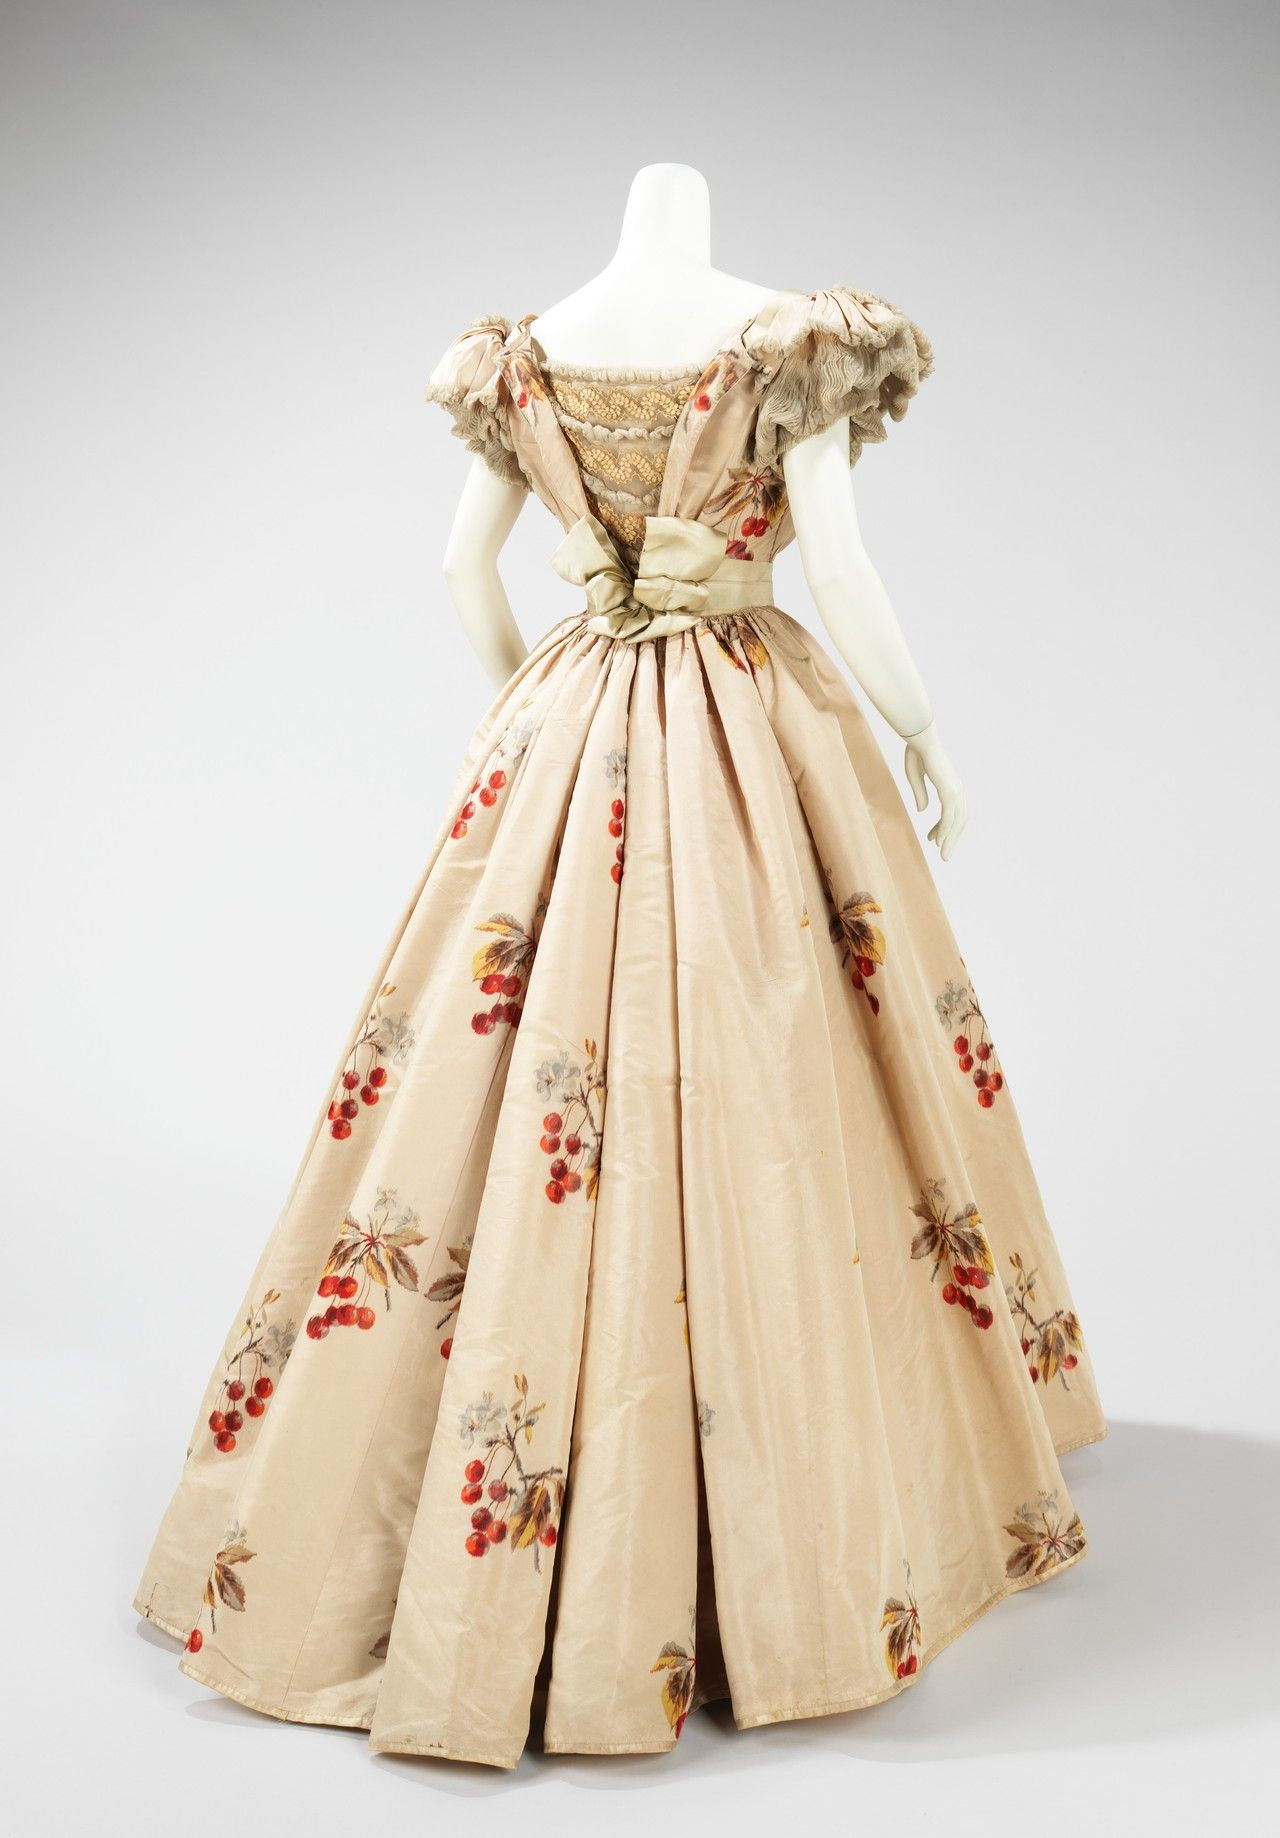 Jeanphilippe worth dress back view ca the costume